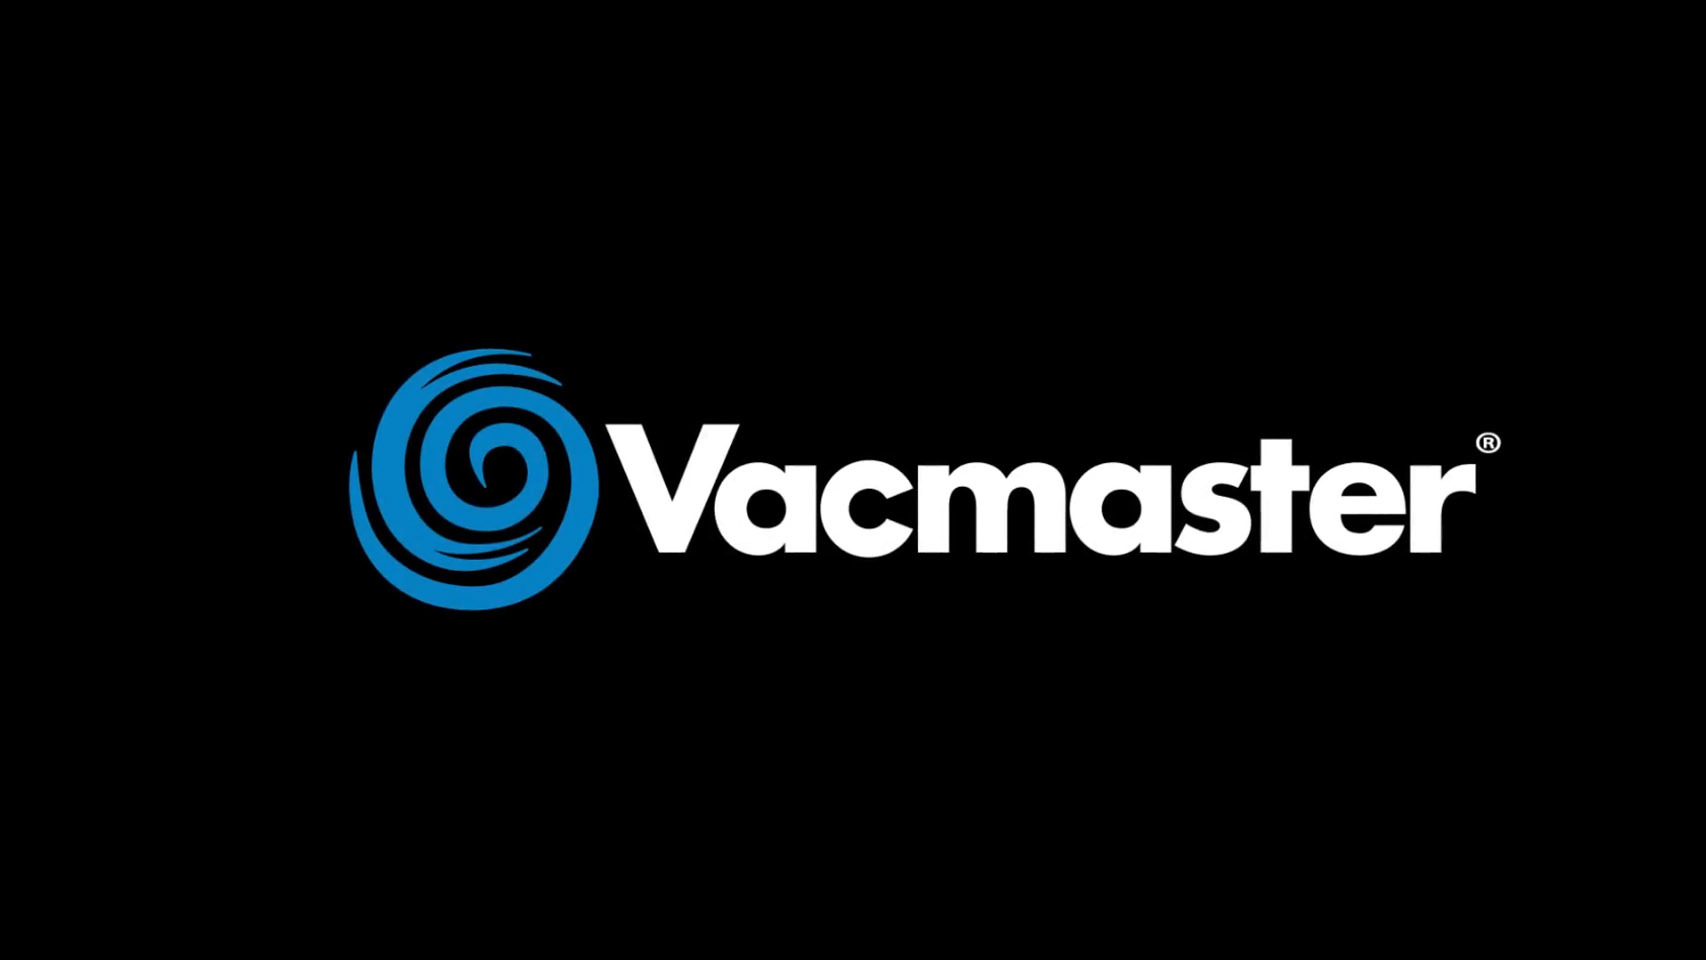 Vacmaster Innovation Story